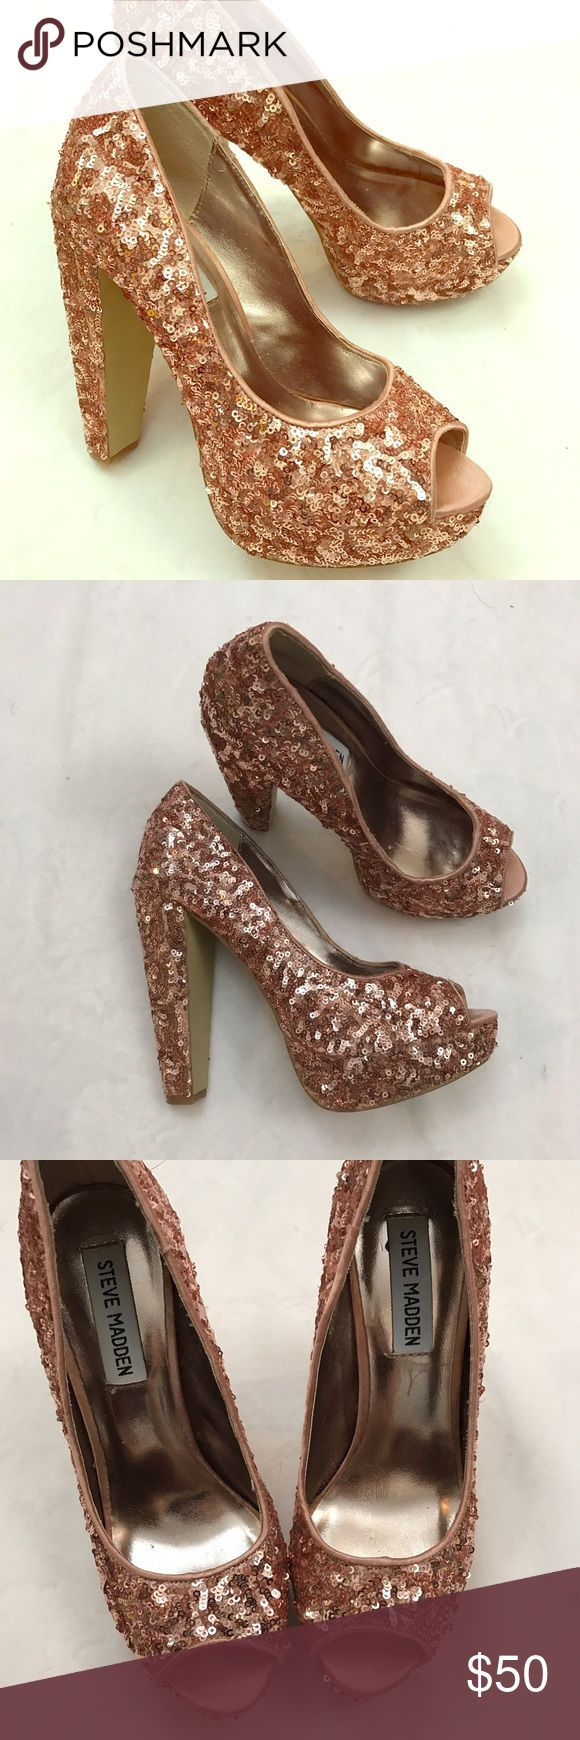 "Steve Madden Ali rose gold chunky heel Stunning rose gold sequin peep toe pumps. In EUC 5"" heel 1"" platform Steve Madden Shoes Heels"